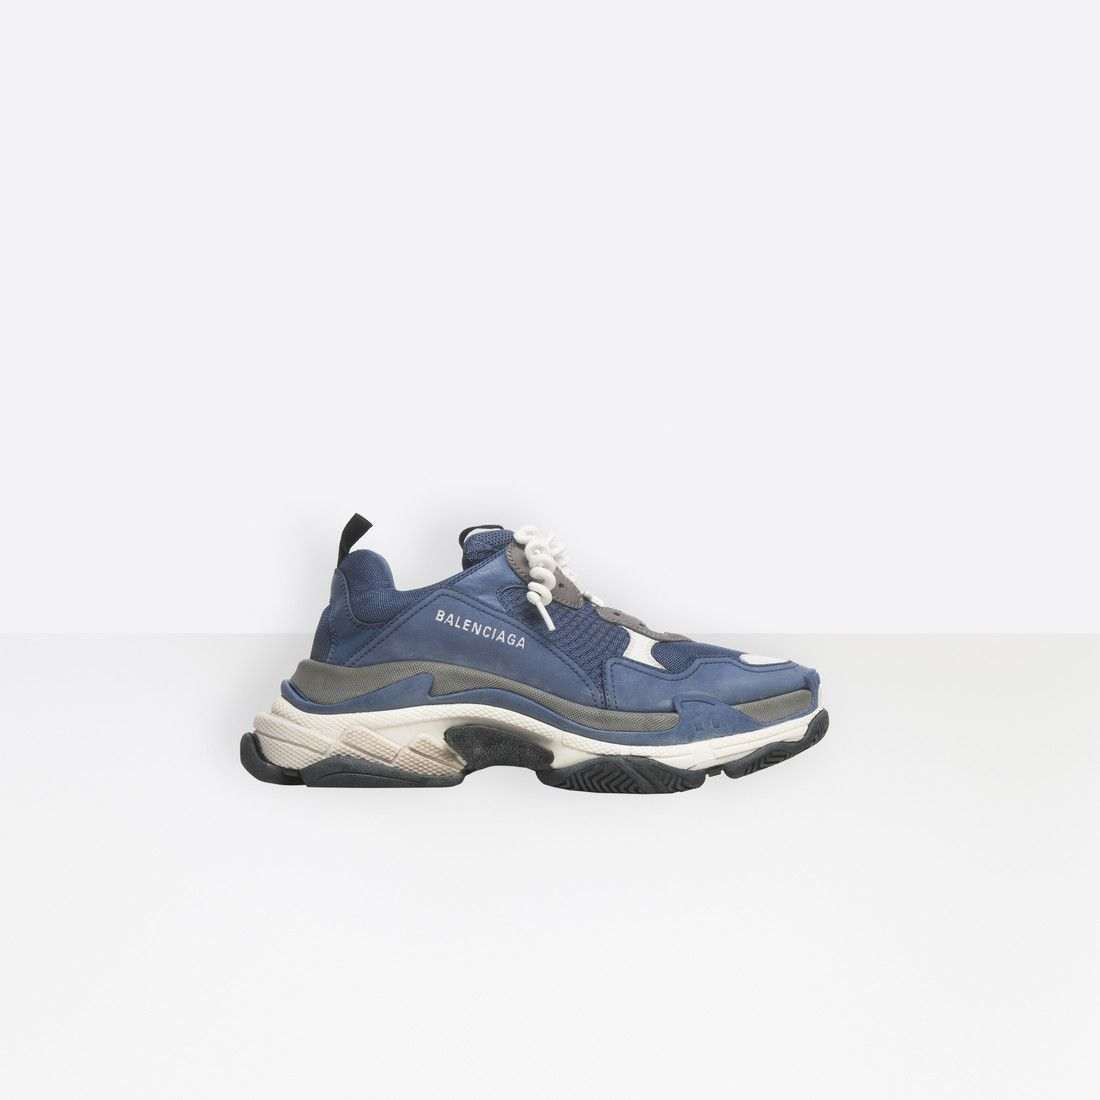 66d66f64b Balenciaga Oversized multimaterial sneakers with quilted effect